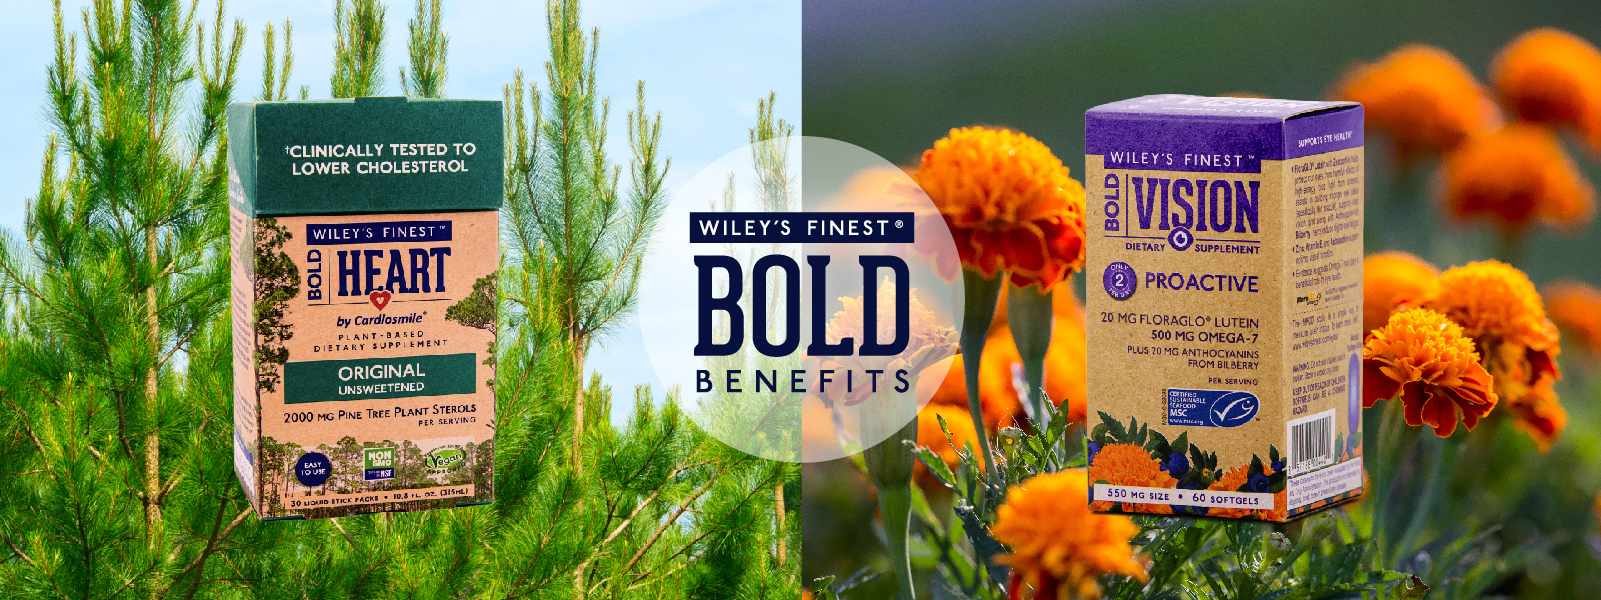 Wiley's Finest Bold Benefits